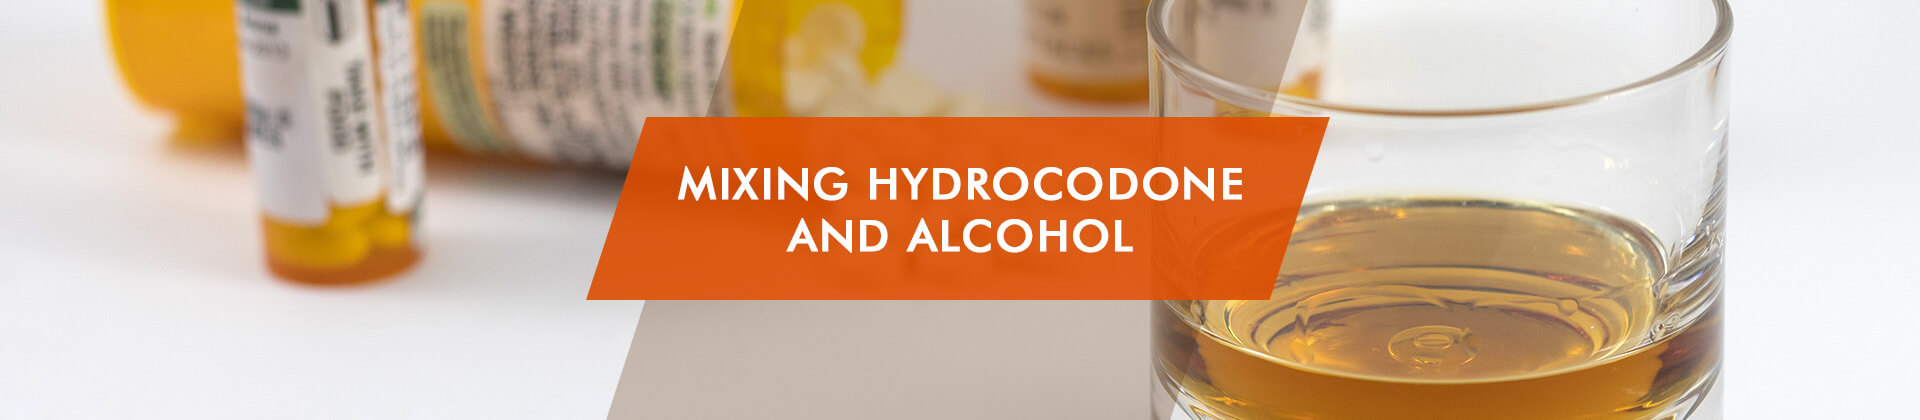 Hydrocoone and alcohol mixing